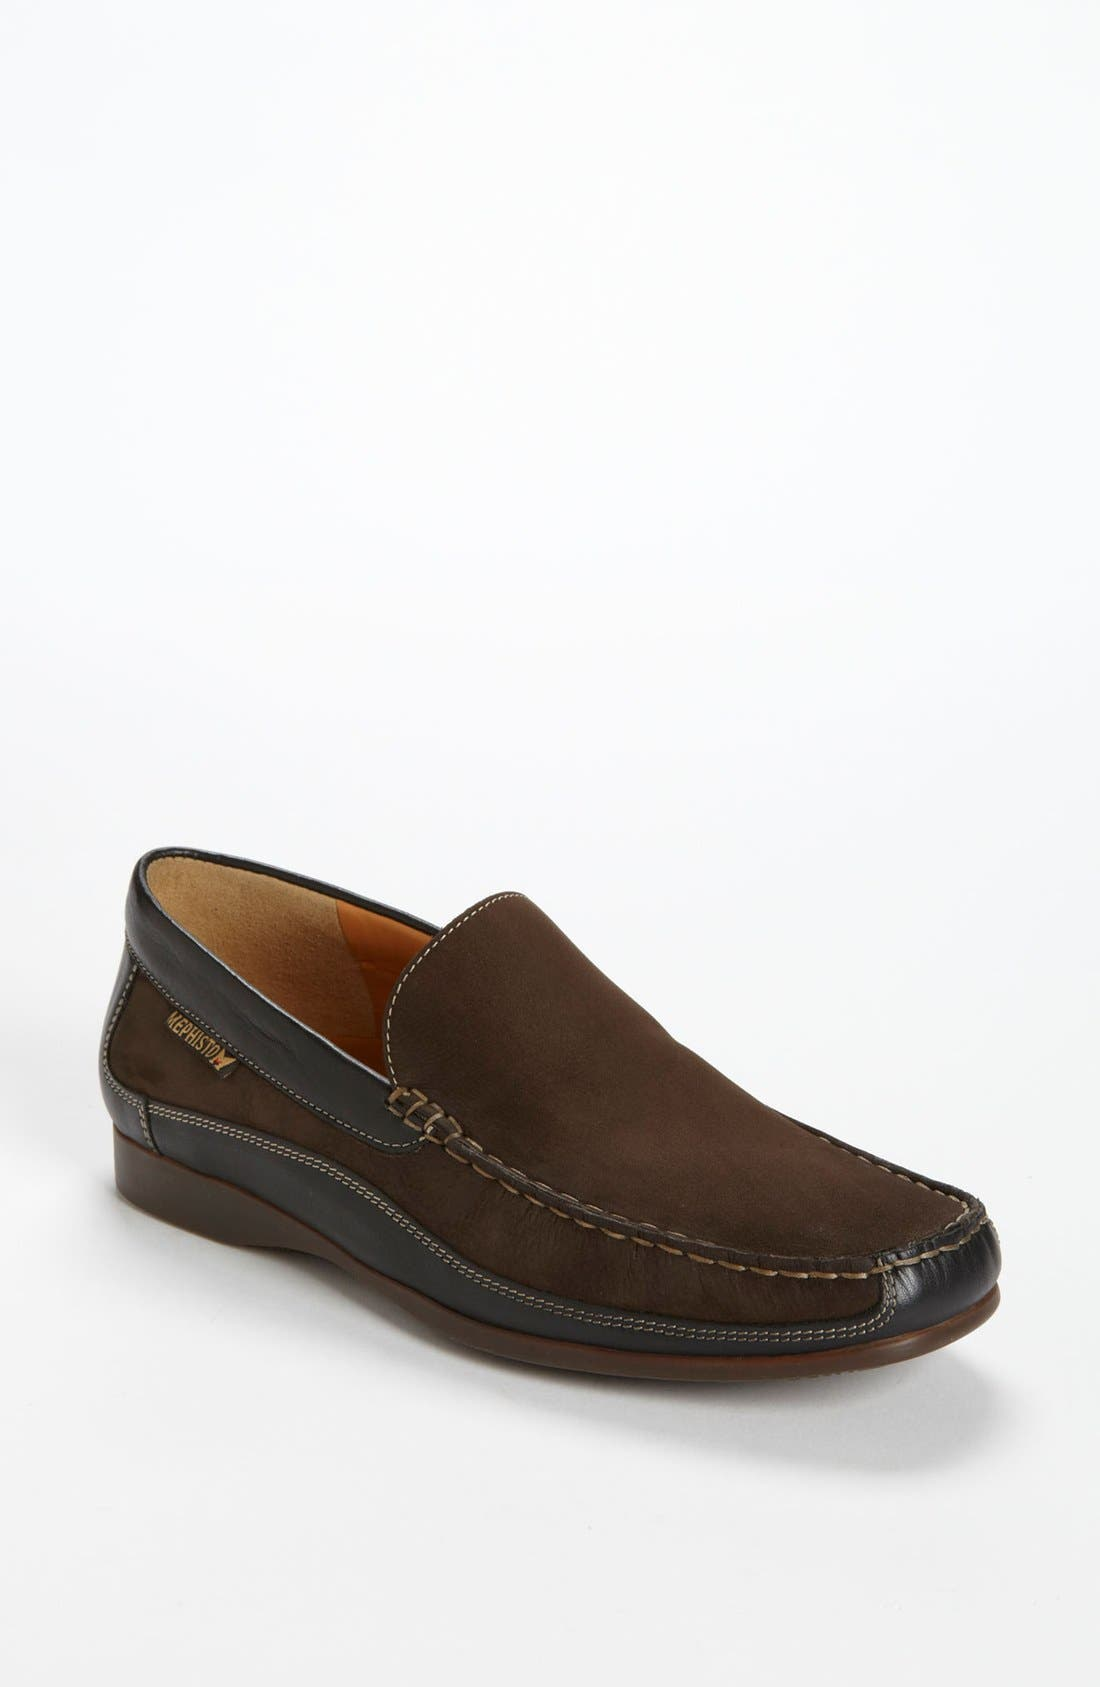 'Baduard' Loafer,                             Main thumbnail 1, color,                             Brown Nubuck/ Brown Suede